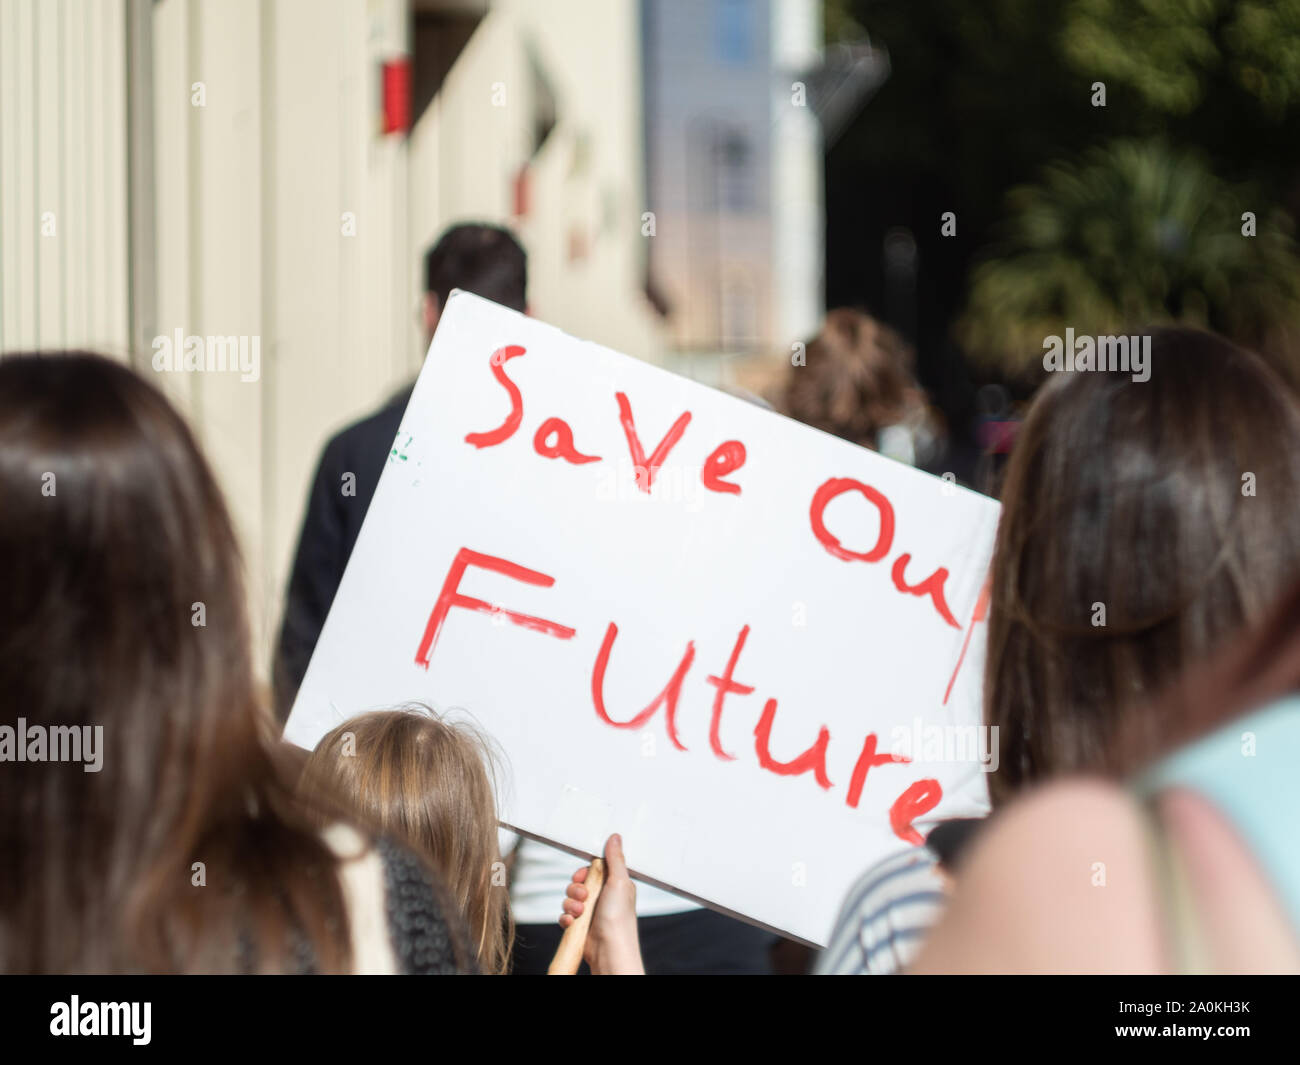 LONDON, UK - SEPTEMBER 20 2019: Young girl holding a handwritten sign that reads 'Save our future' at the Global Climate Strike in London Stock Photo